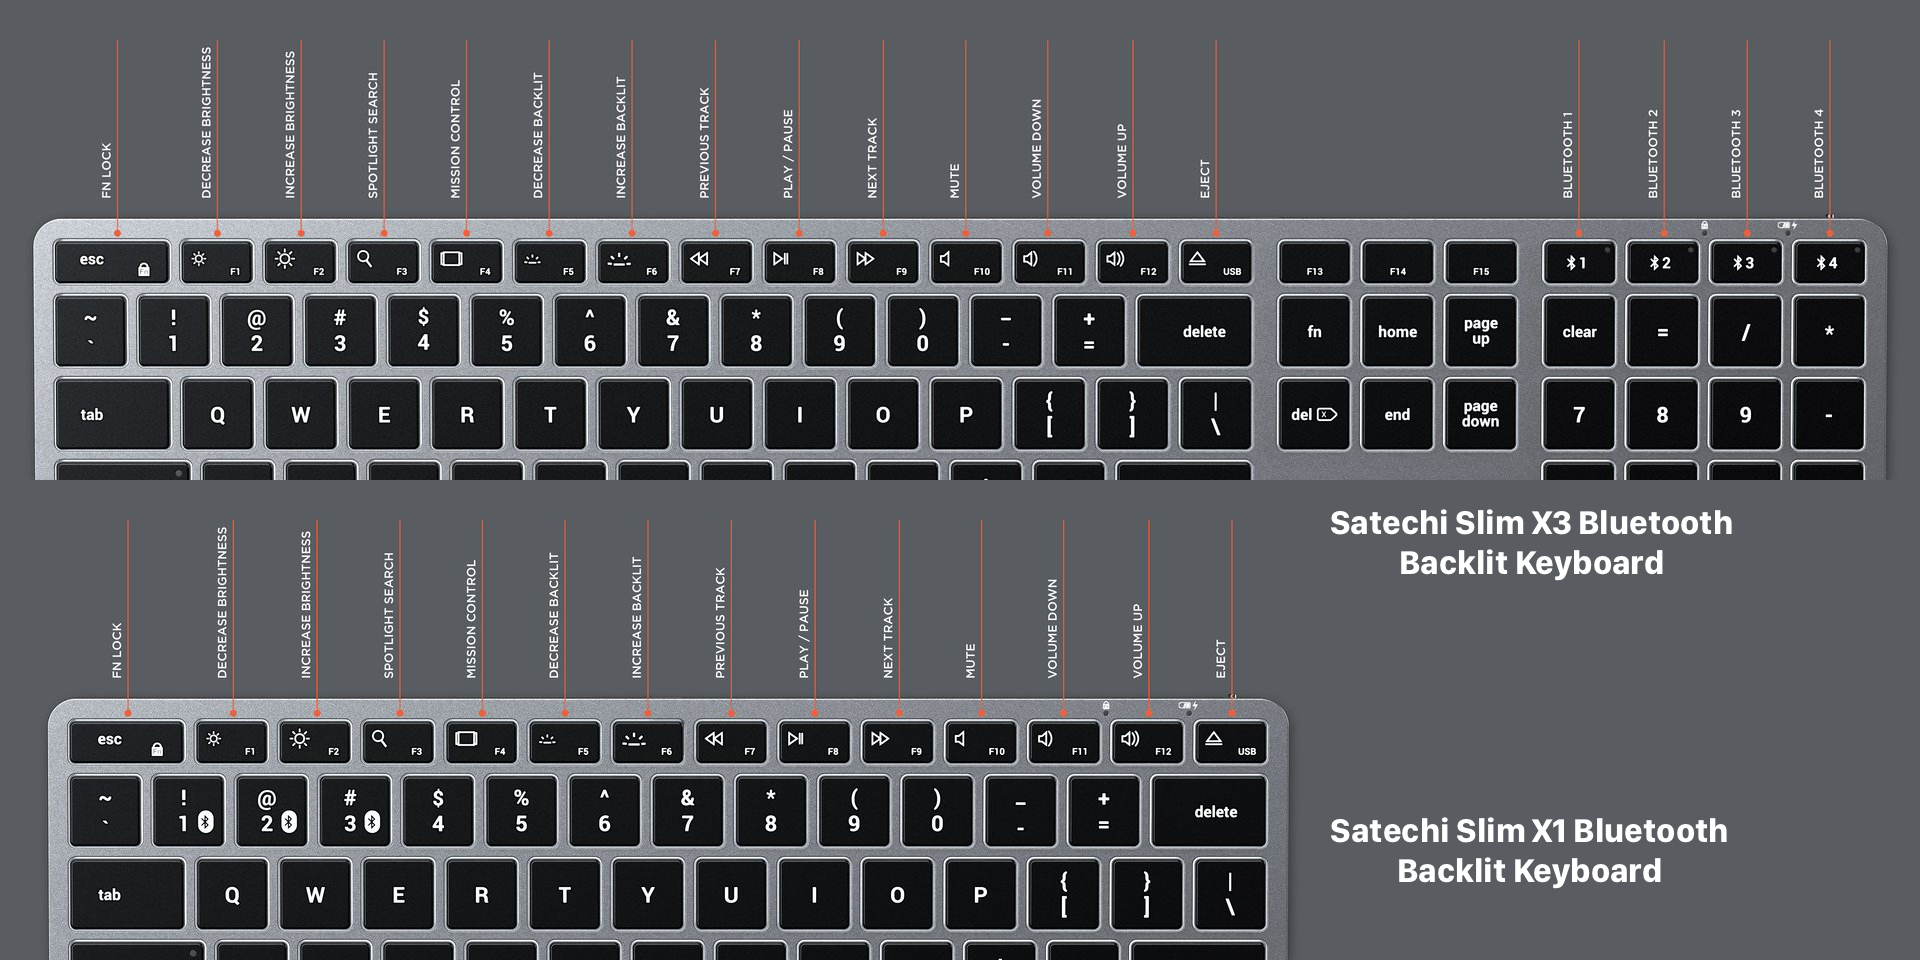 Satechi Slim X1/X3 Bluetooth Backlit Keyboardのファンクションキー